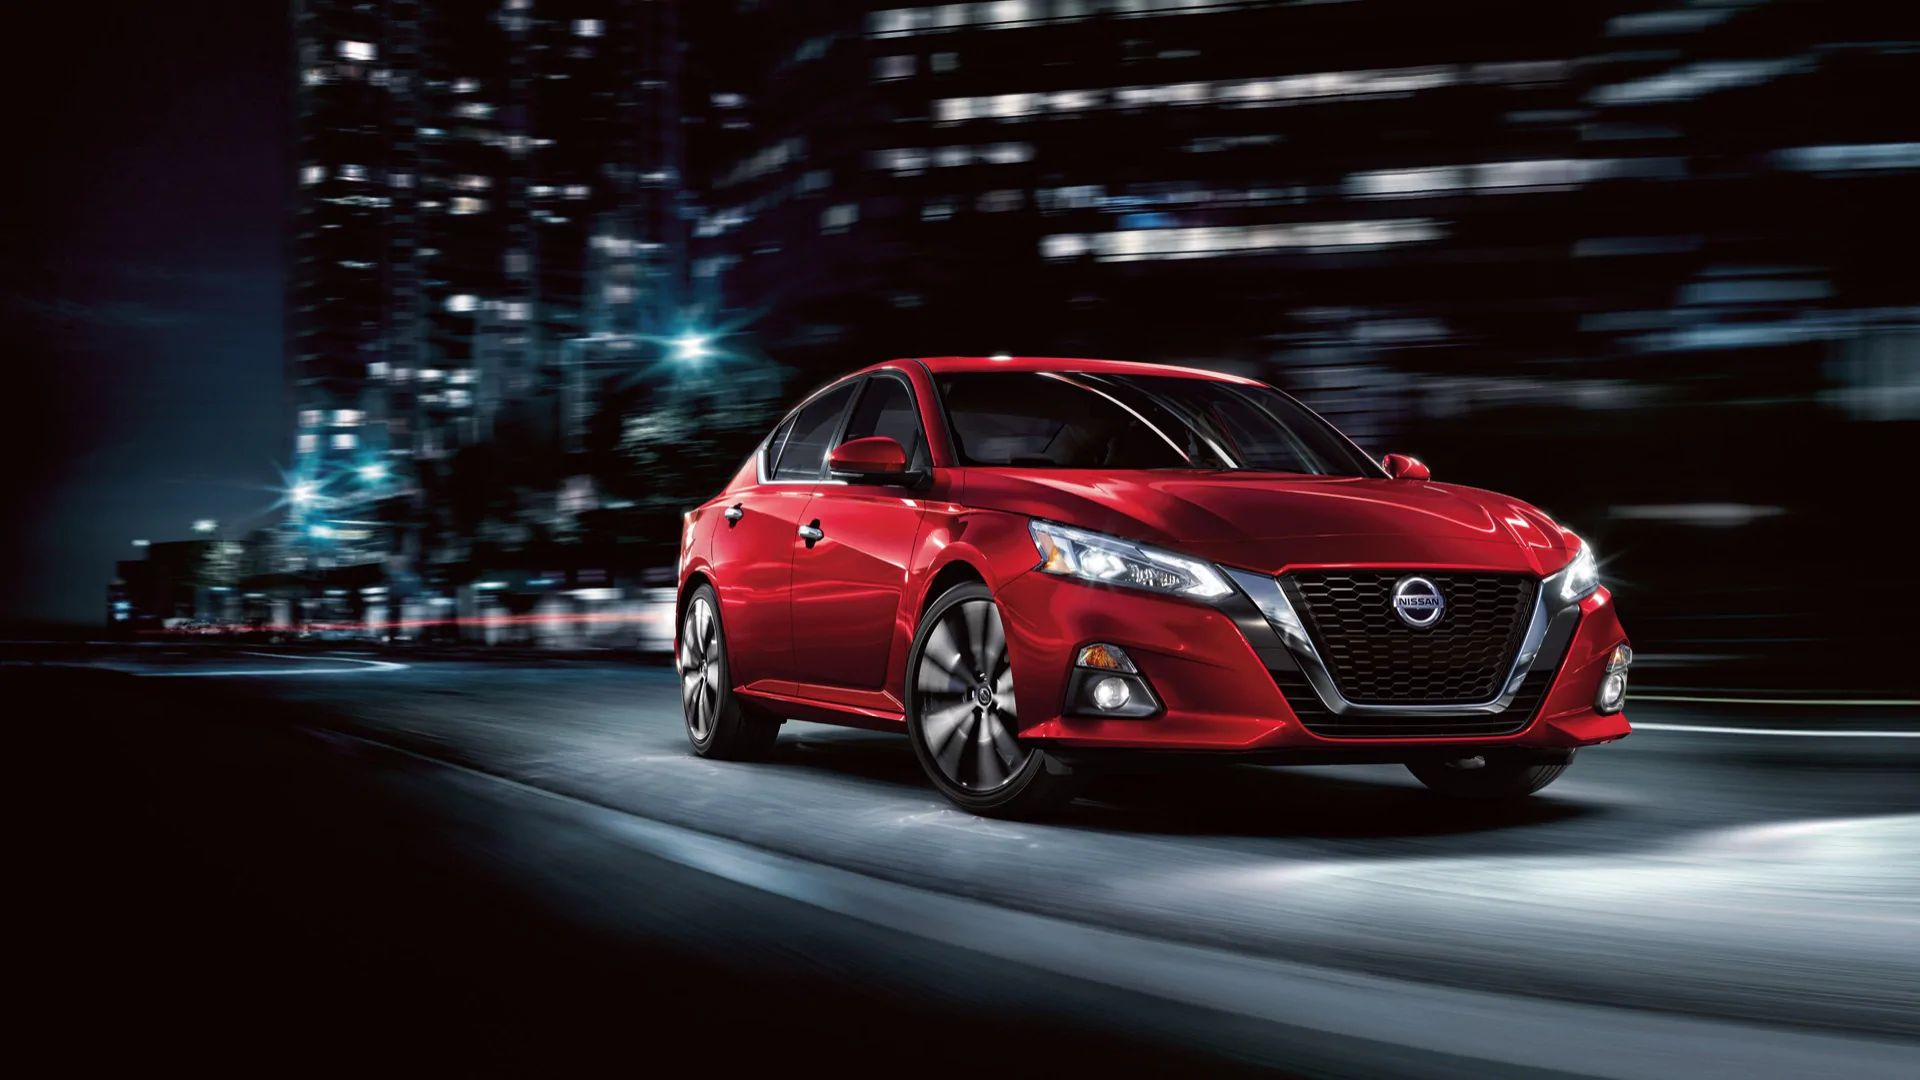 Used Nissan Altima for Sale in Tulsa, OK